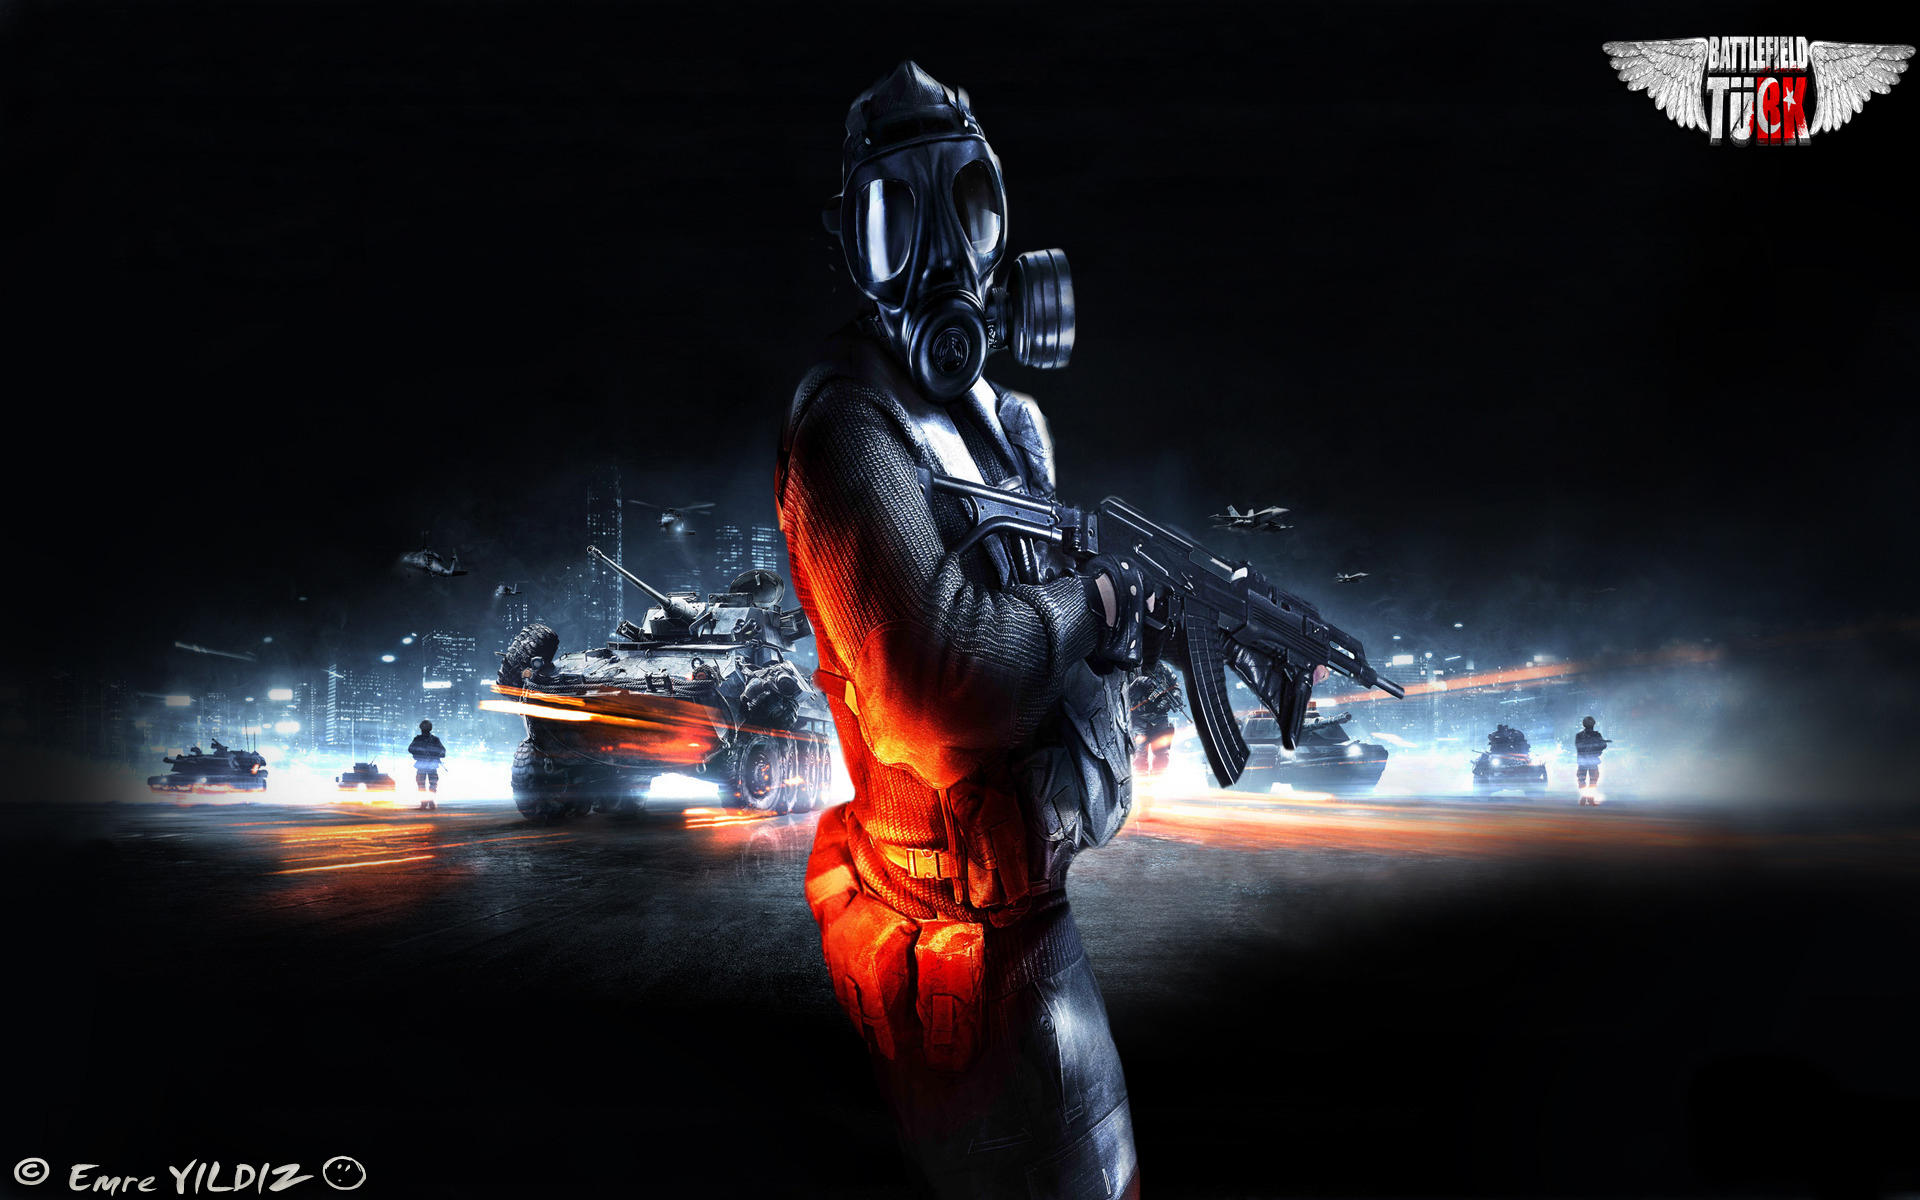 battlefield 3 wallpaper+pngunarmedhero on deviantart